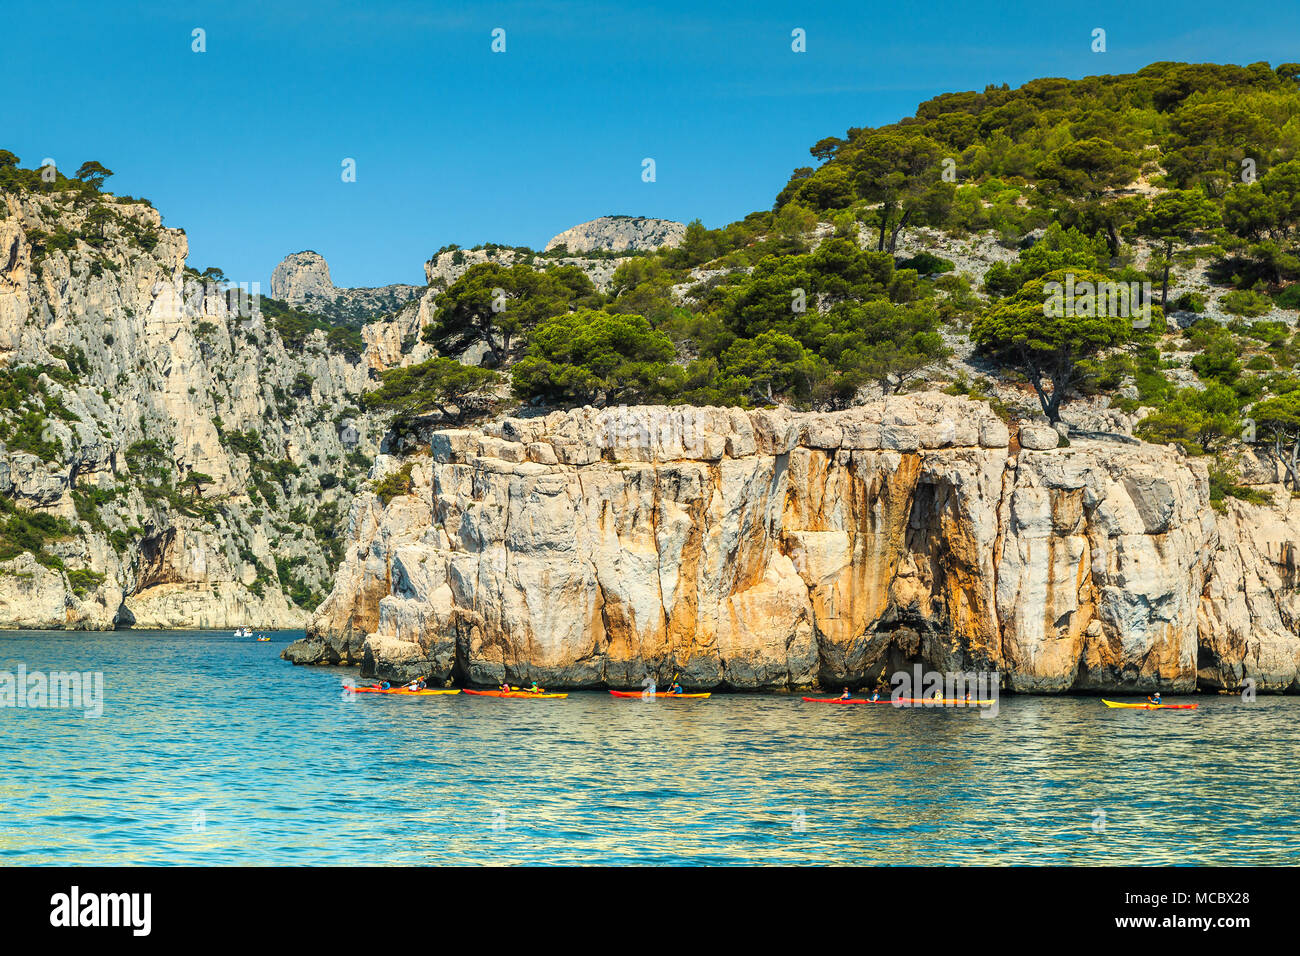 Location Canoe Cassis Mediterranean Landscape Colorful Kayaks In The Famous French